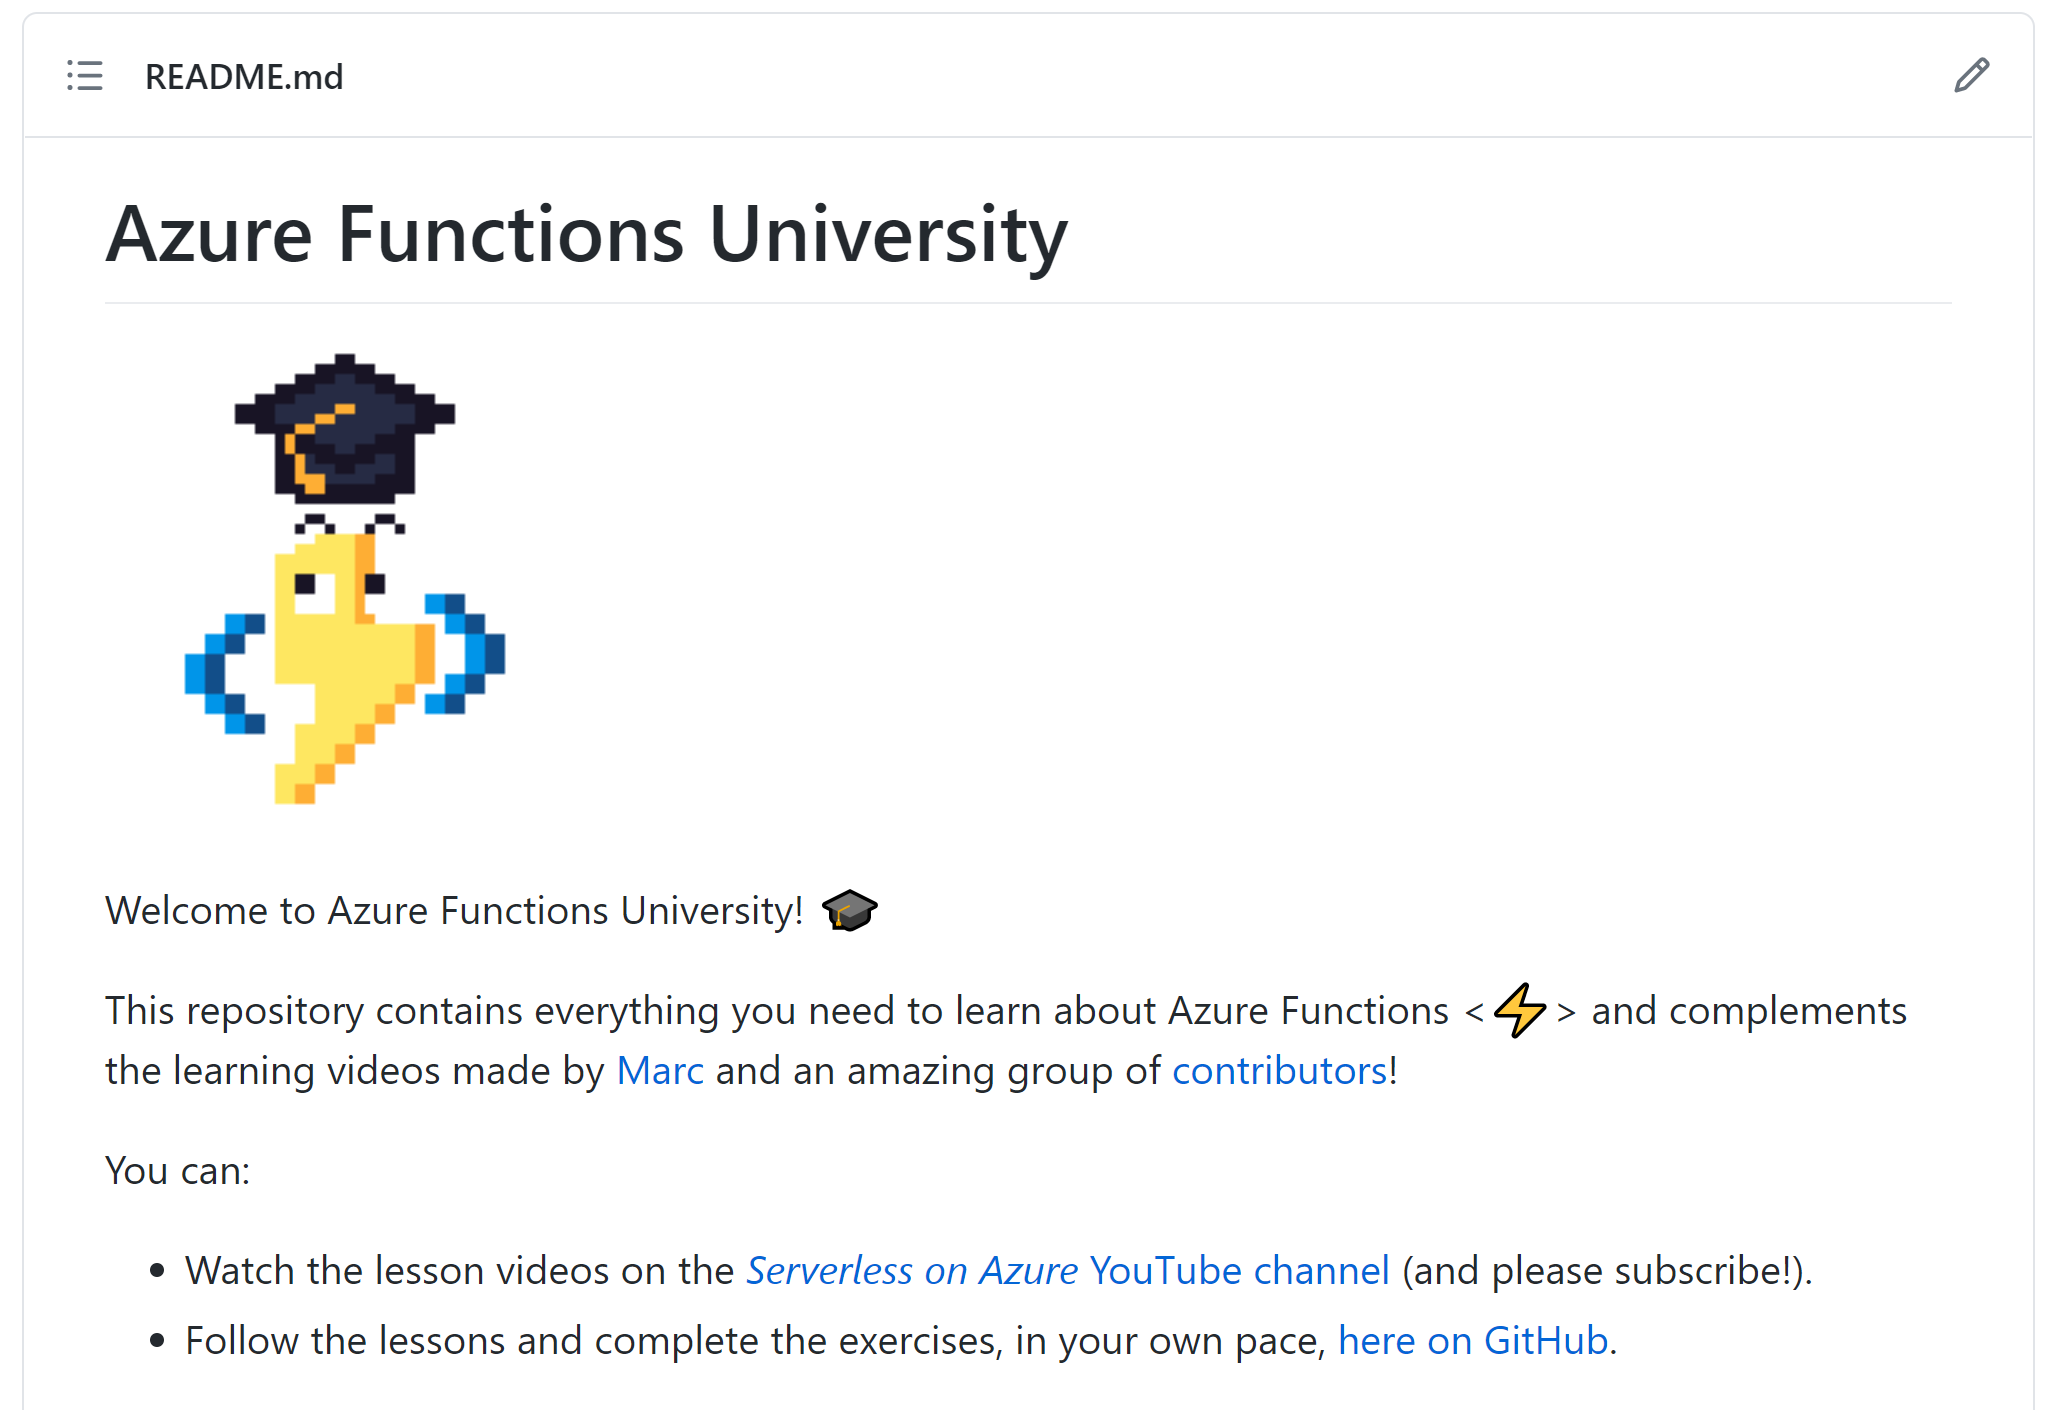 Screenshot of the Azure Functions University GitHub repository